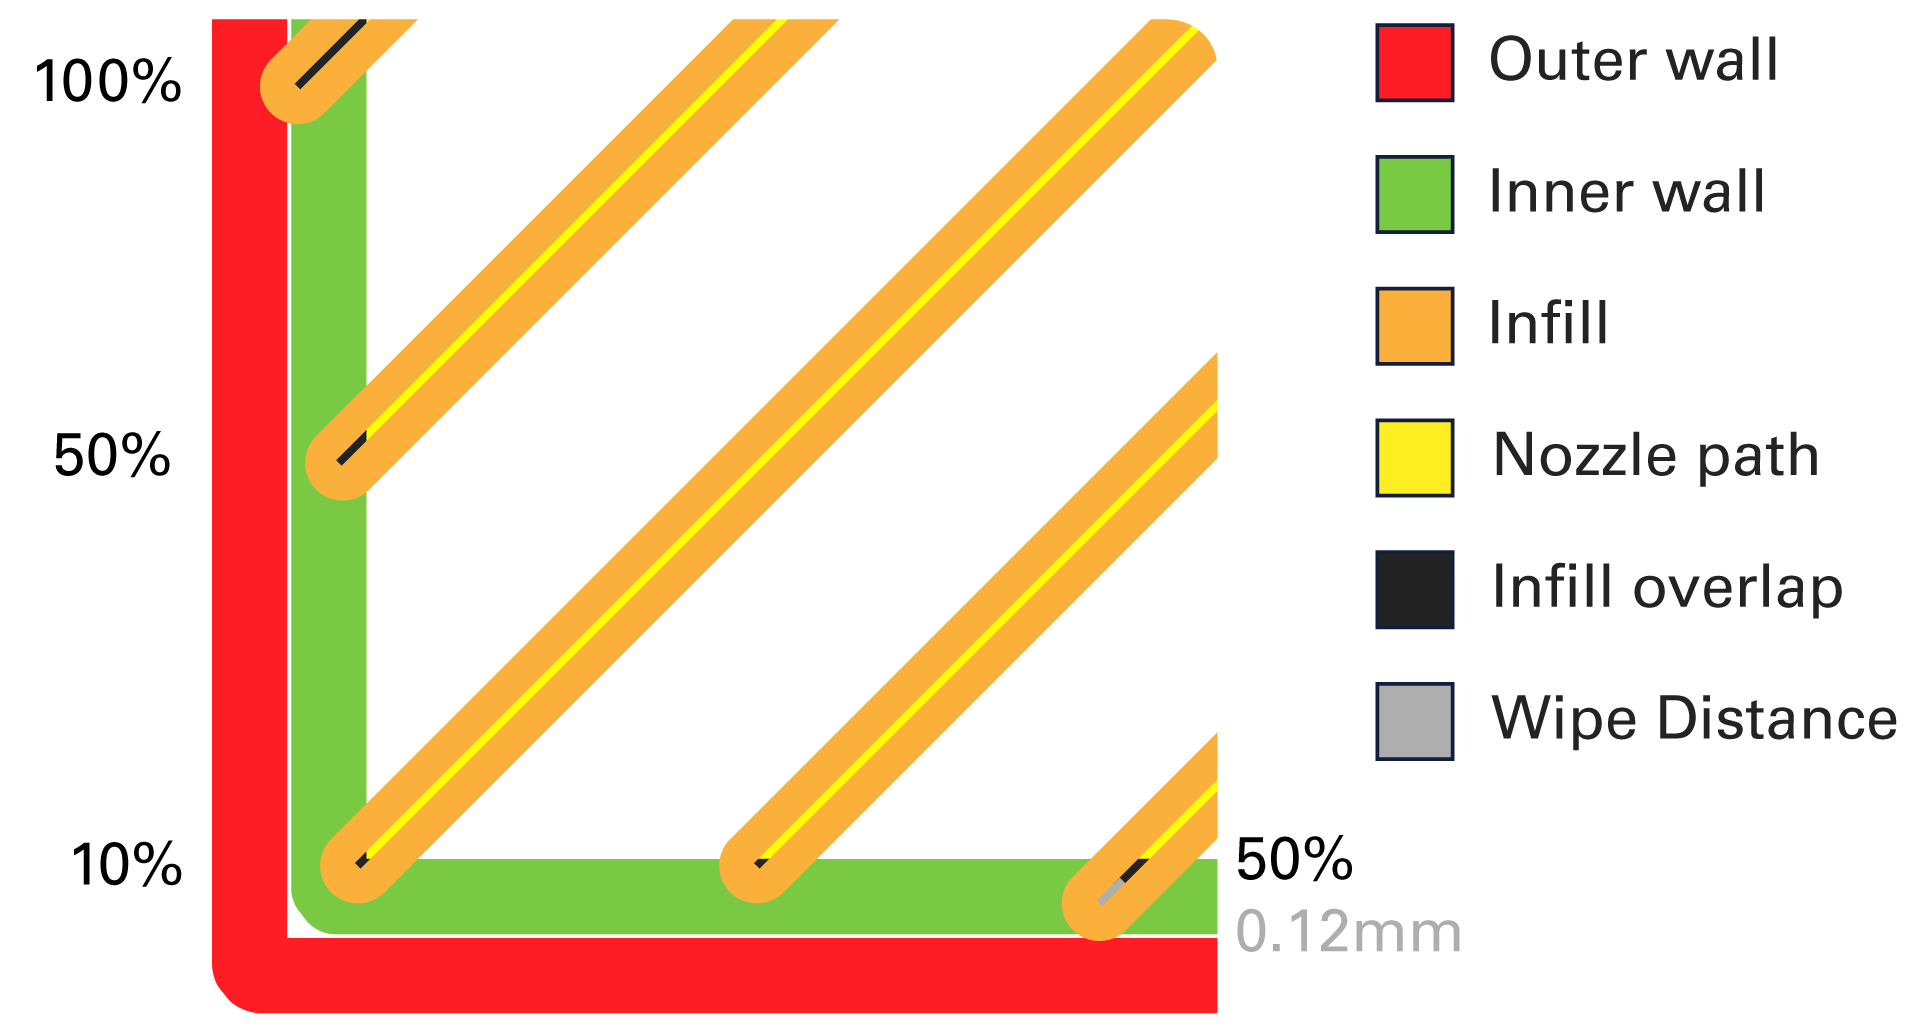 infill_overlap.png